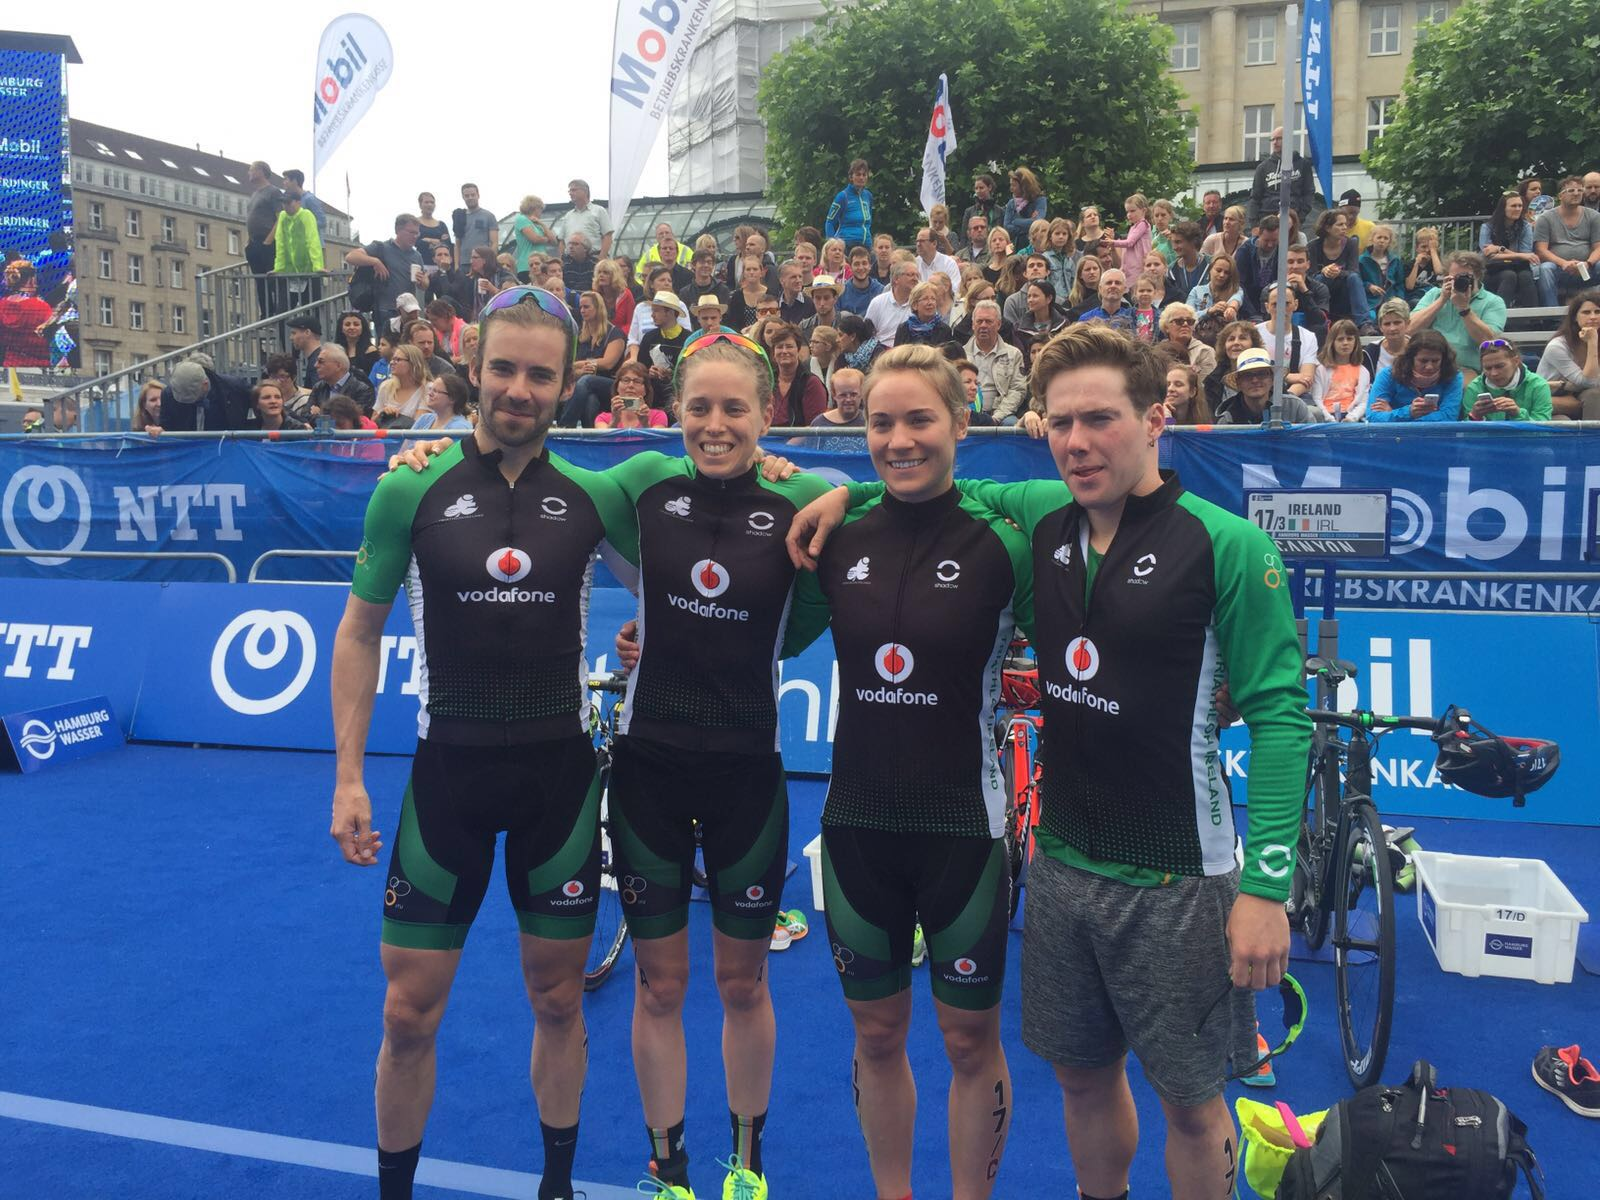 2016 World Mixed Relay Hamburg